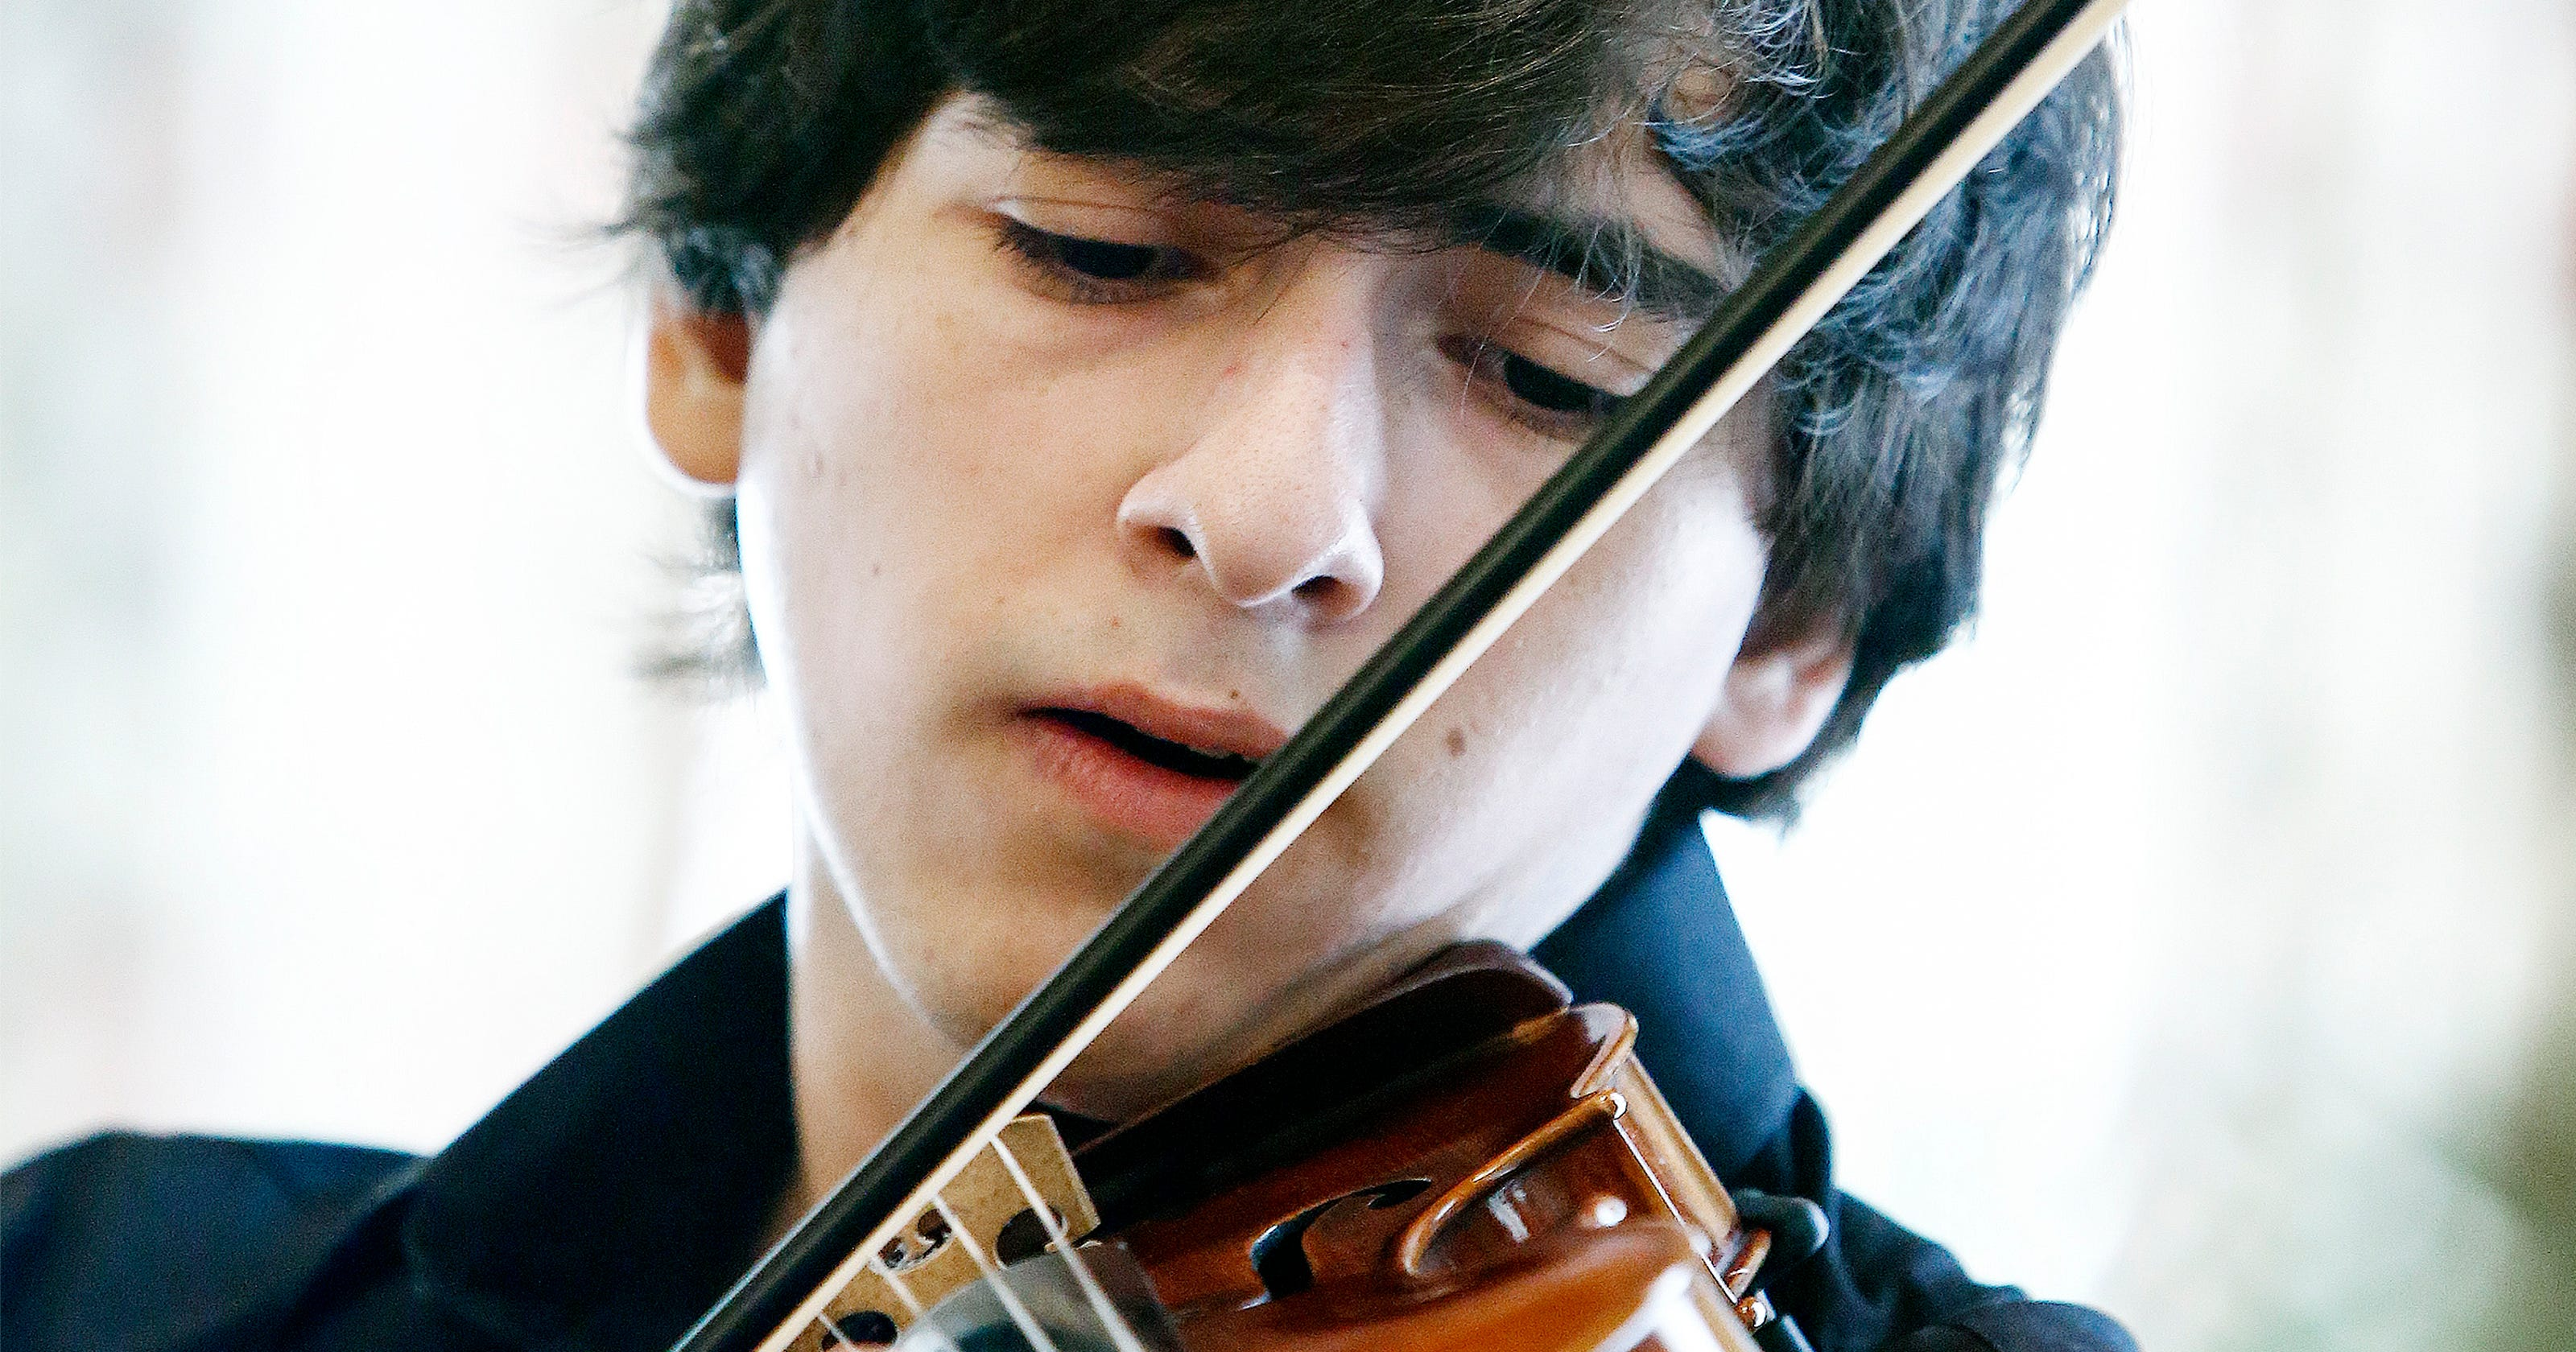 Teenage virtuoso excels at playing a jazz violin in the land of